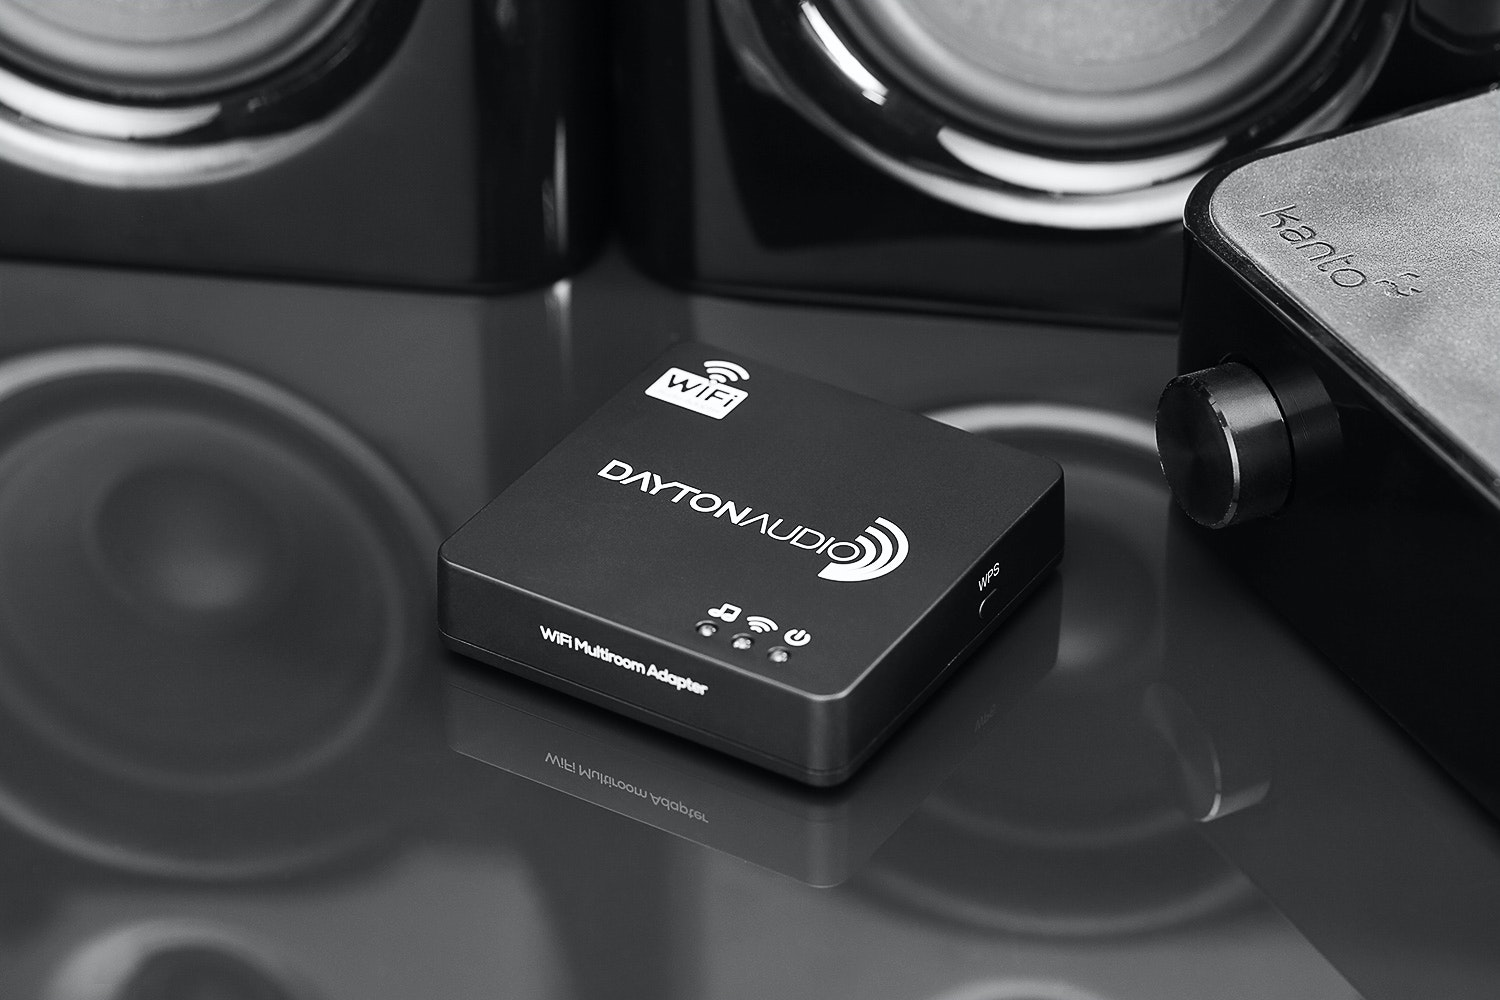 Dayton Audio Wi-Fi Multi-Room Audio Adapter